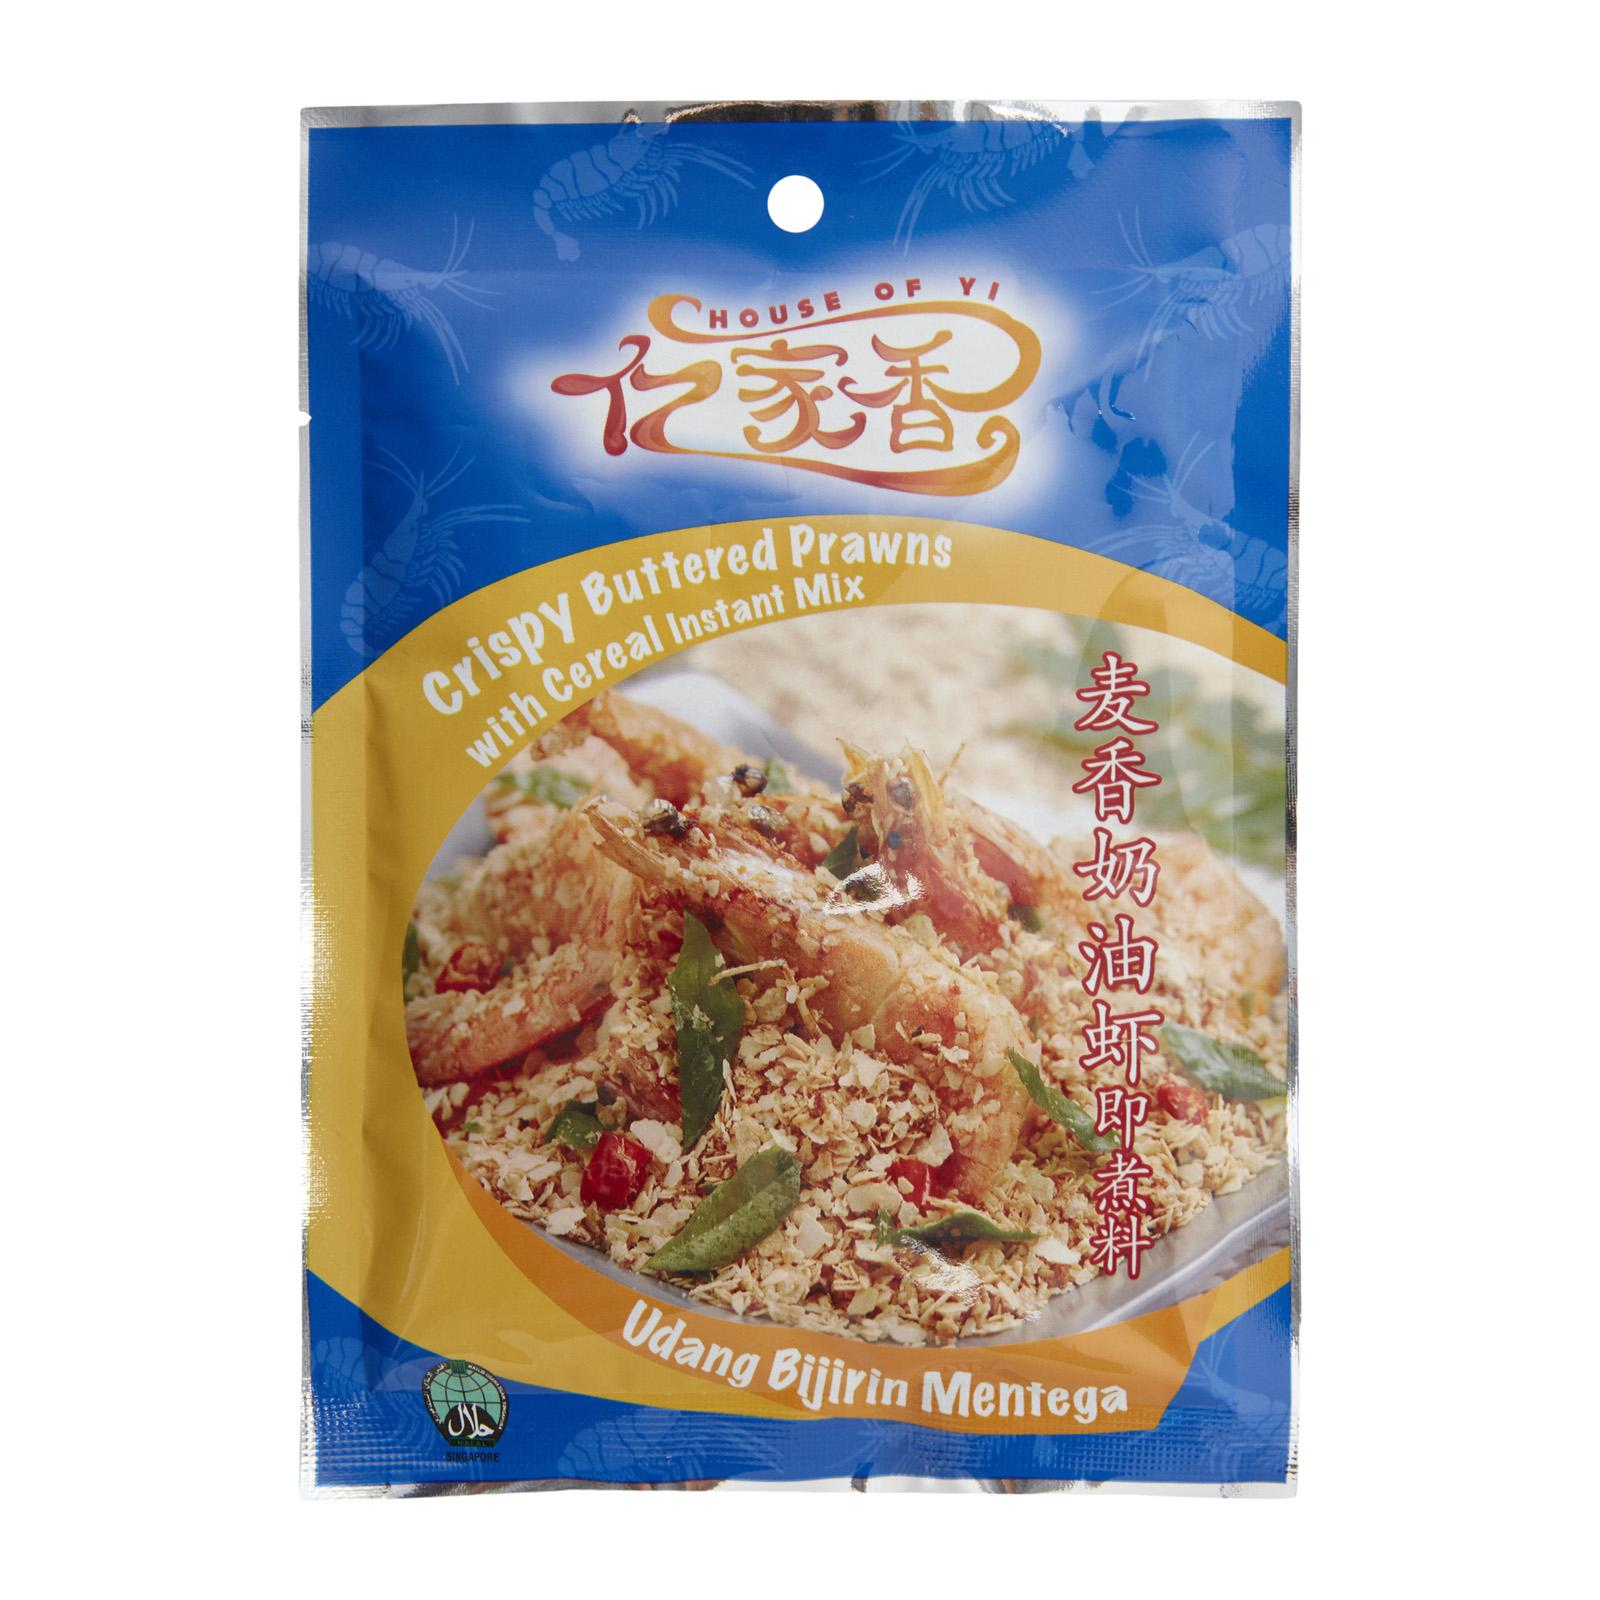 House Of Yi Crispy Buttered Prawns With Cereal Instant Mix - By FOOD SERVICE